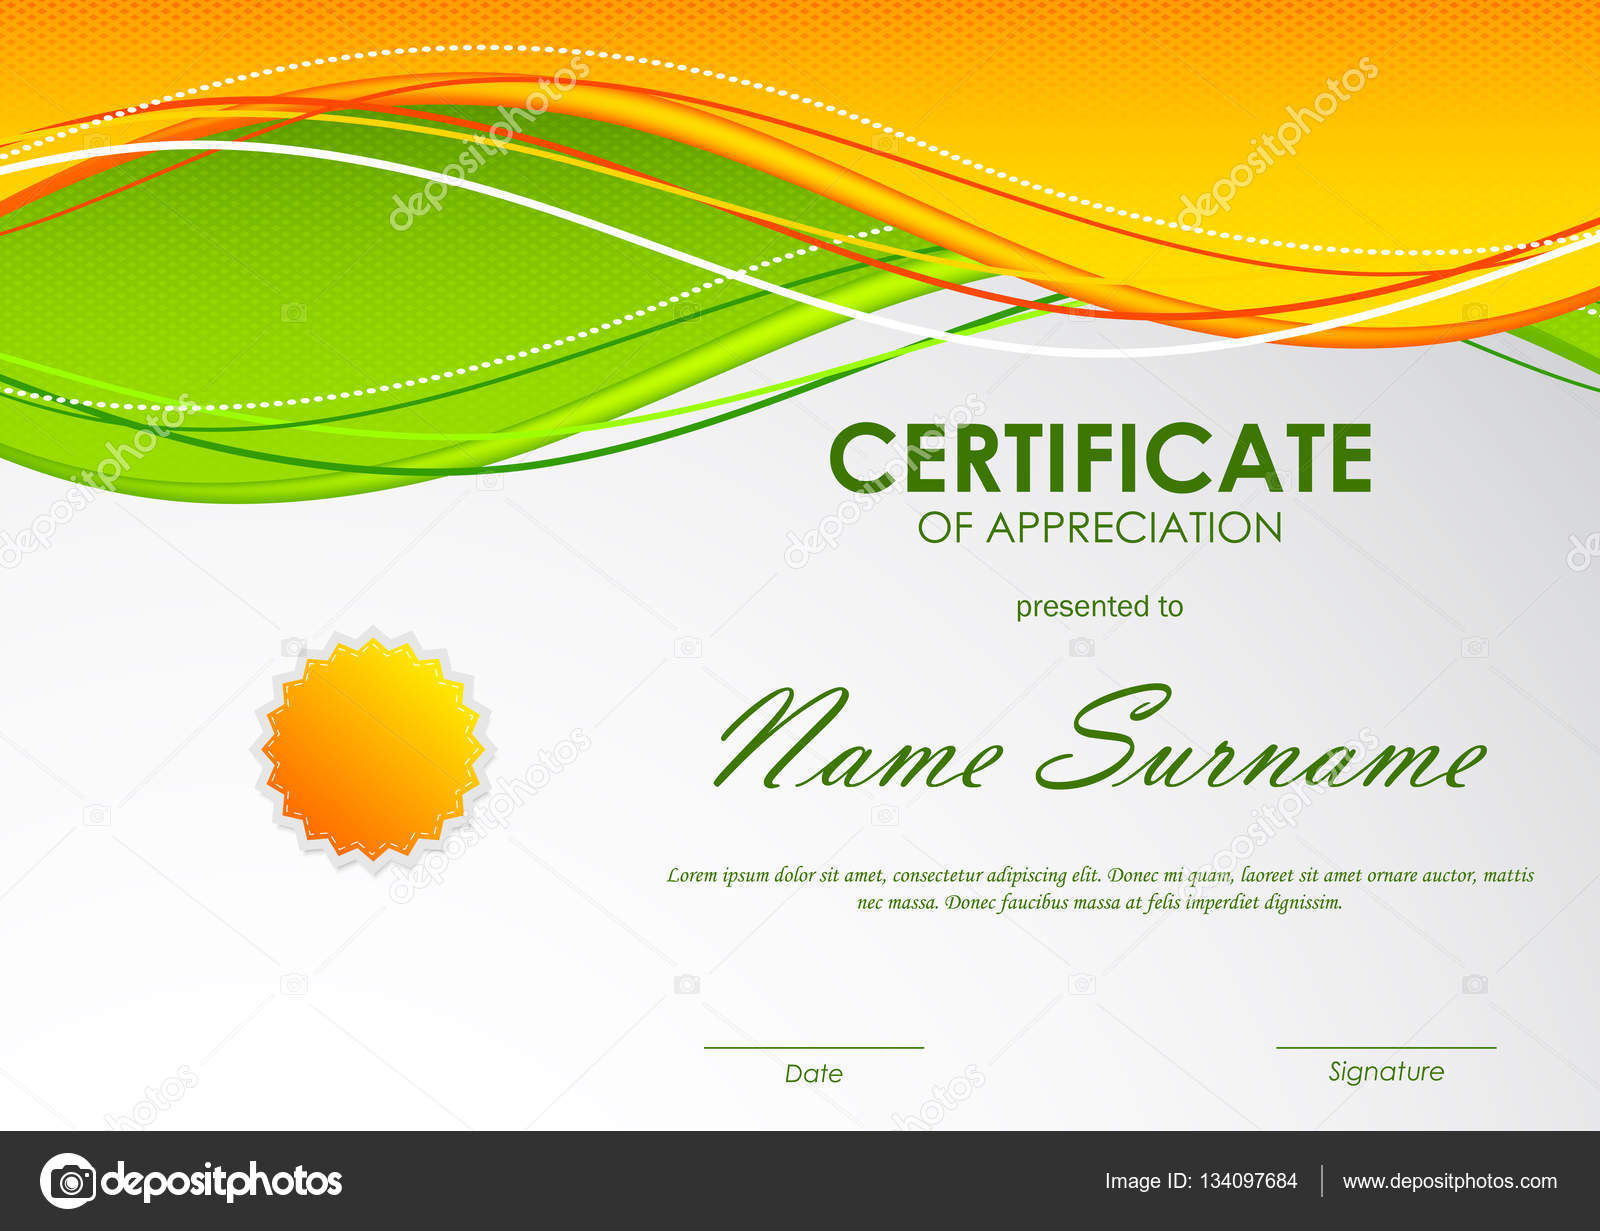 Certificate of appreciation template stock vector denchik certificate of appreciation template with orange and green wavy background and seal vector illustration vector by denchik alramifo Image collections